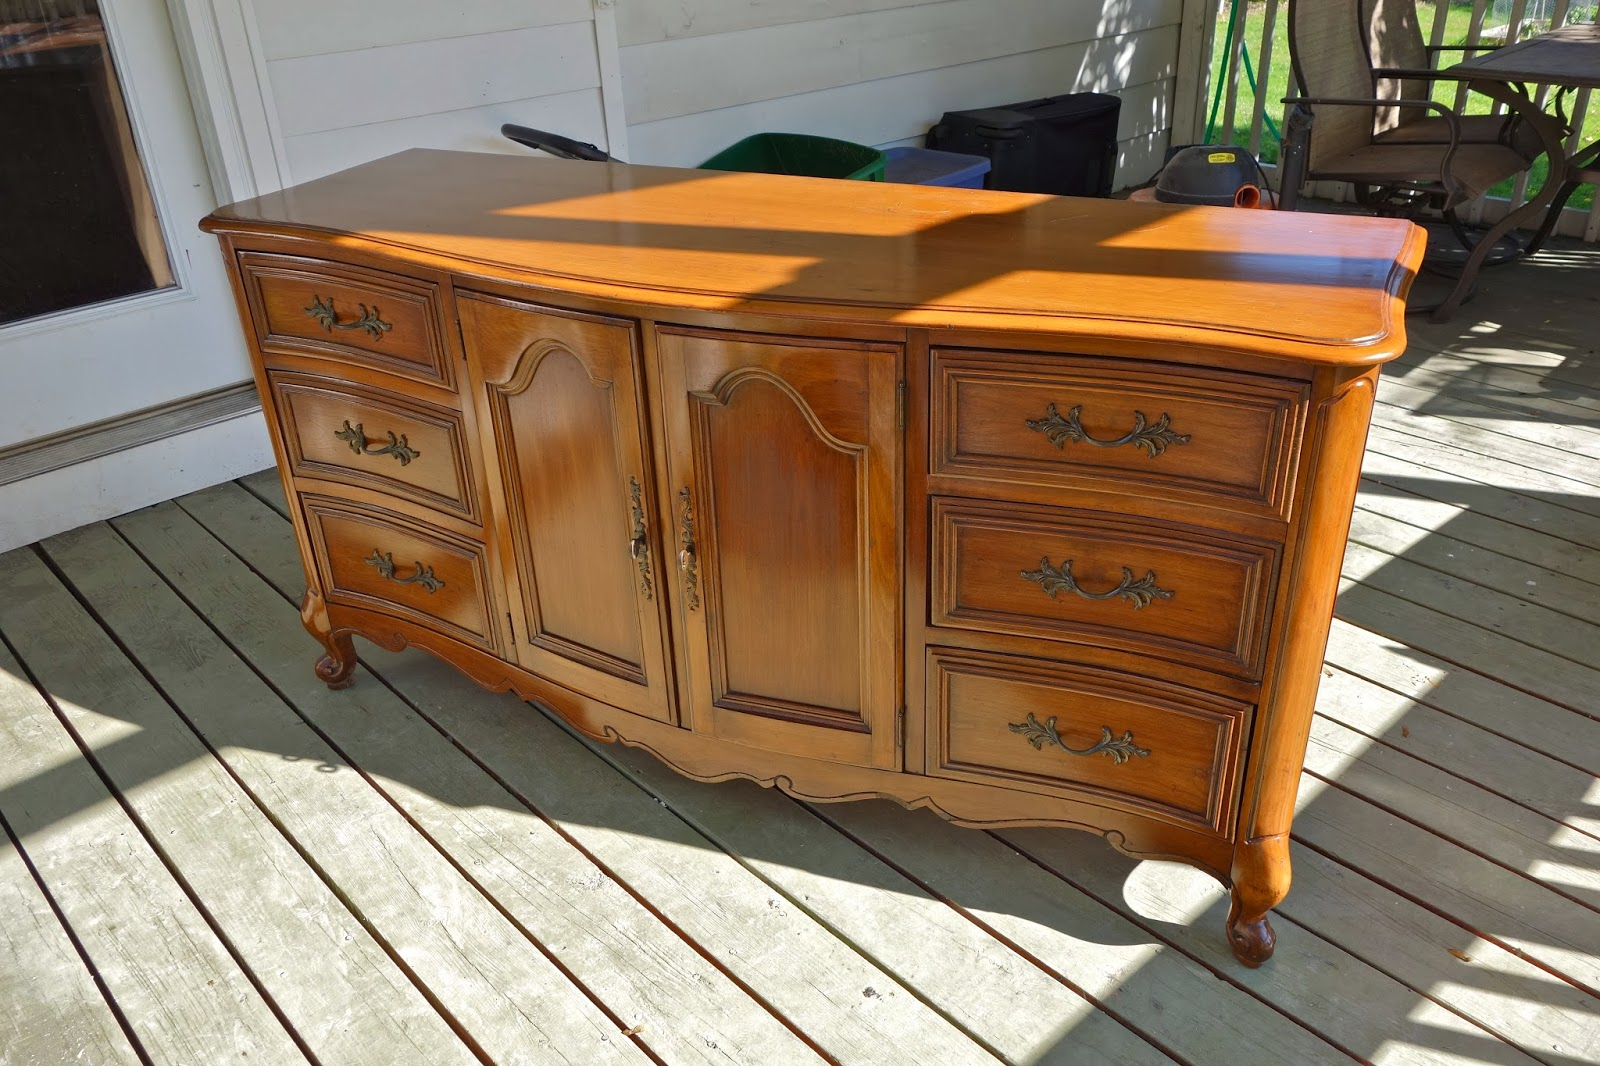 DIY  Repurposing A Buffet Or Dresser As Bathroom Vanity Part 1 Rustyfarmhouse